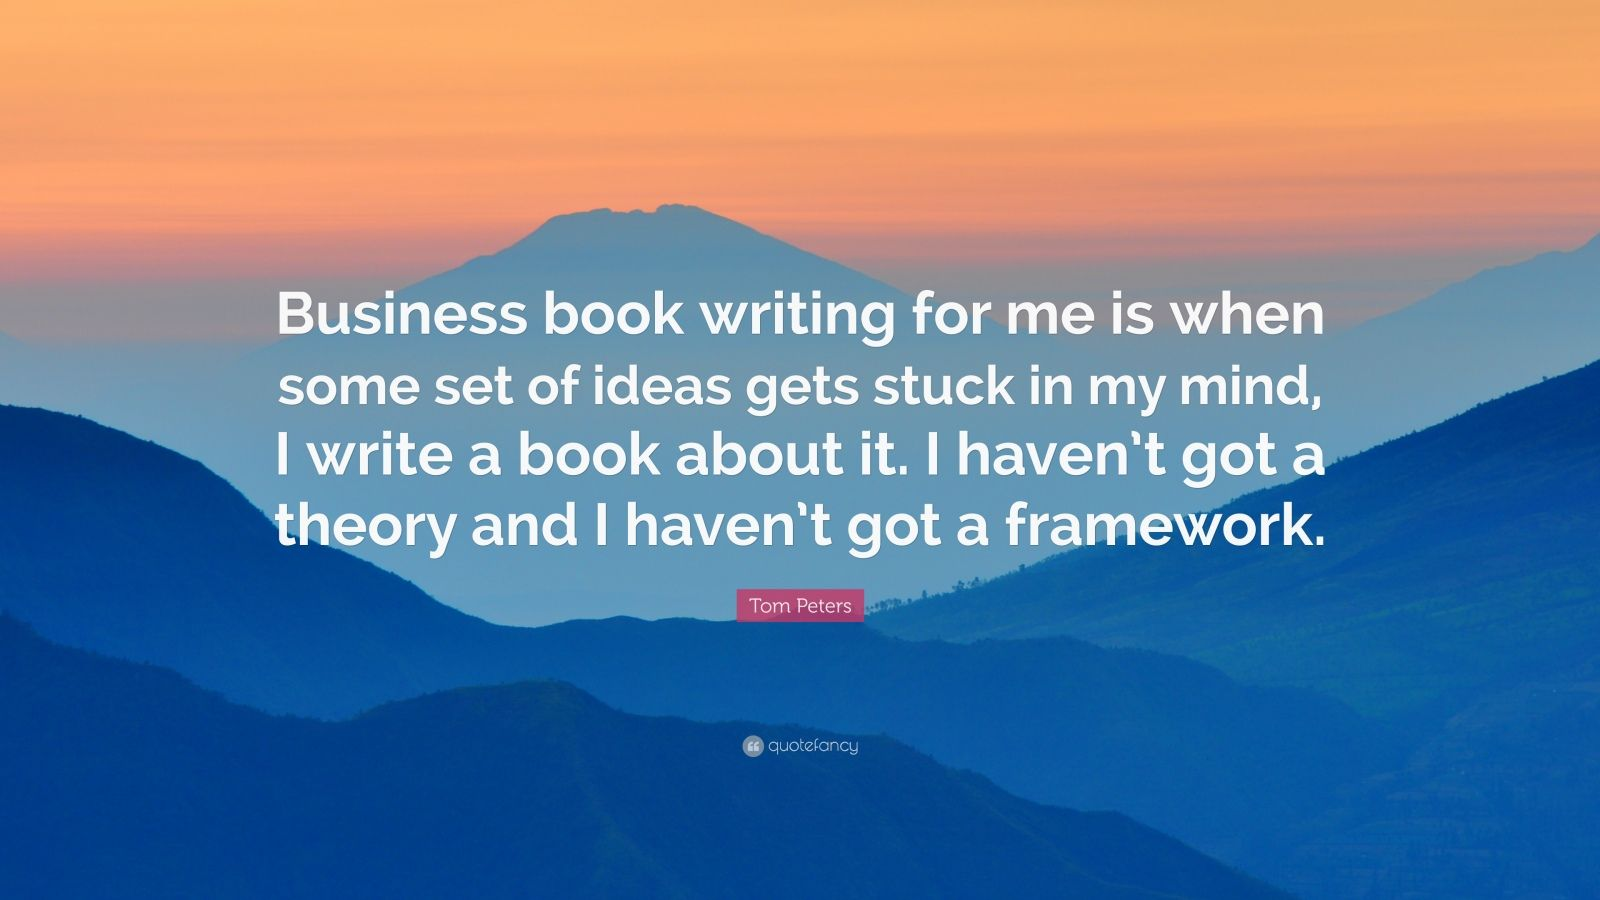 """Tom Peters Quote: """"Business book writing for me is when some set of ideas gets stuck in my mind, I write a book about it. I haven't got a theory and I haven't got a framework."""""""